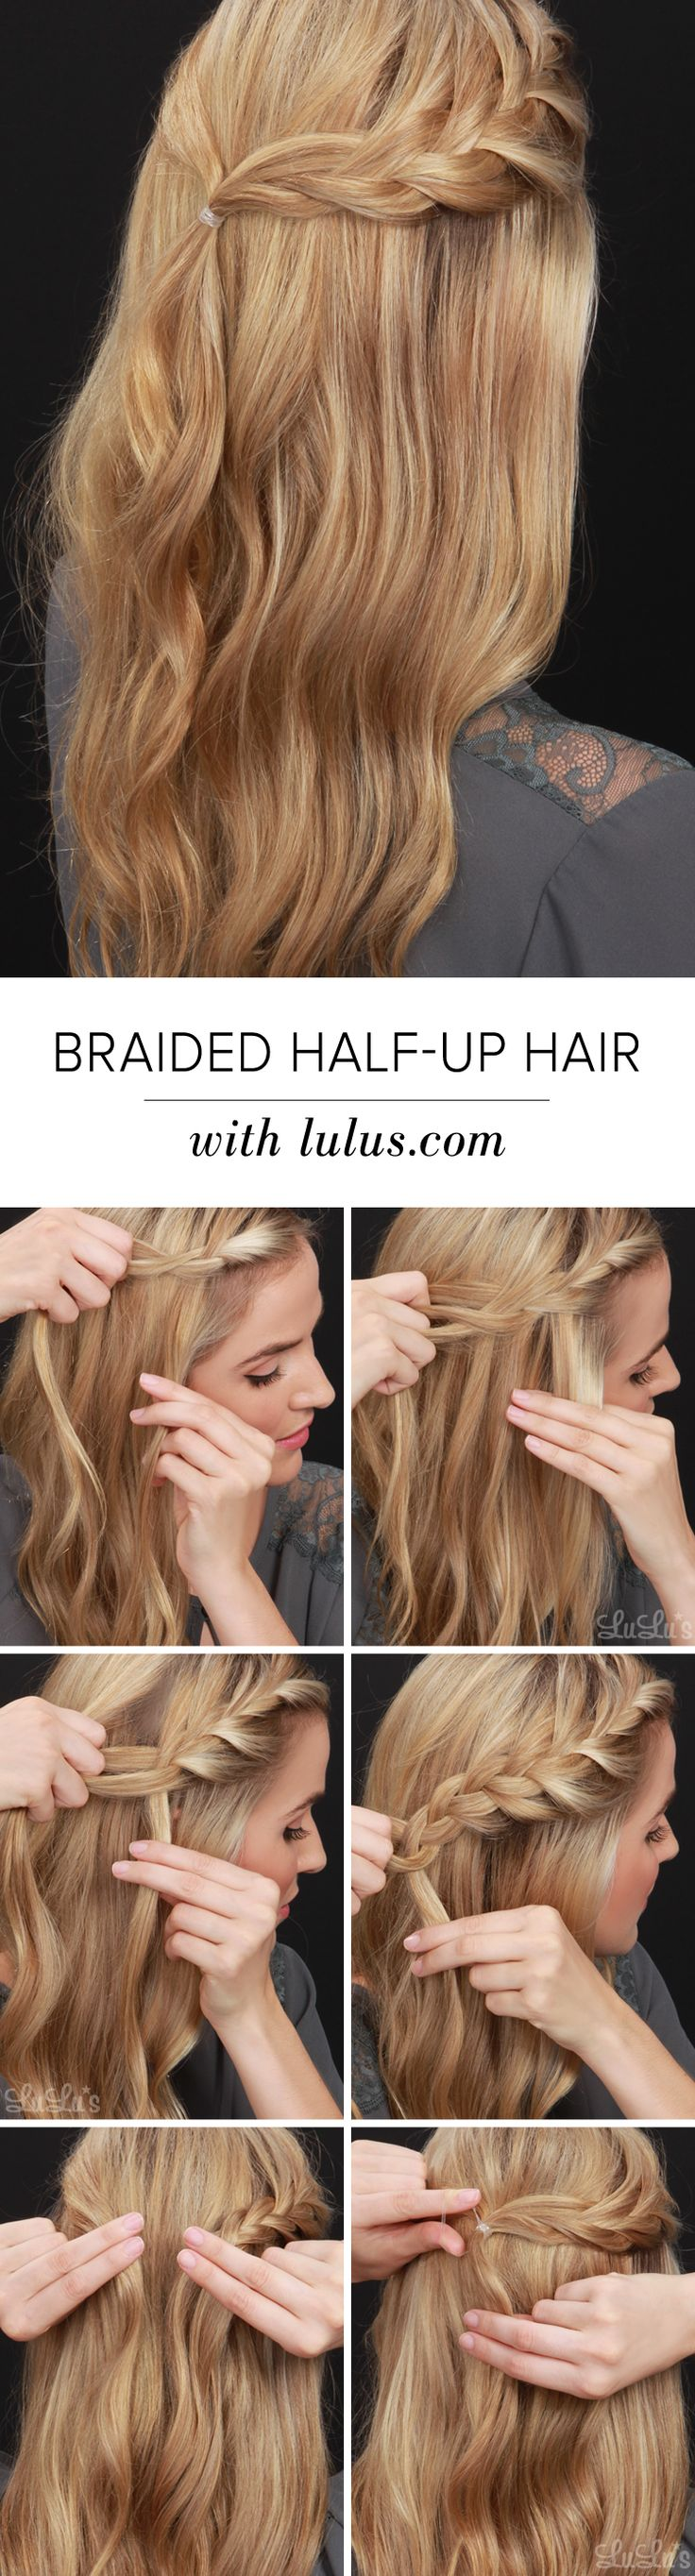 How-to Braided Half-up Hair Tutorial